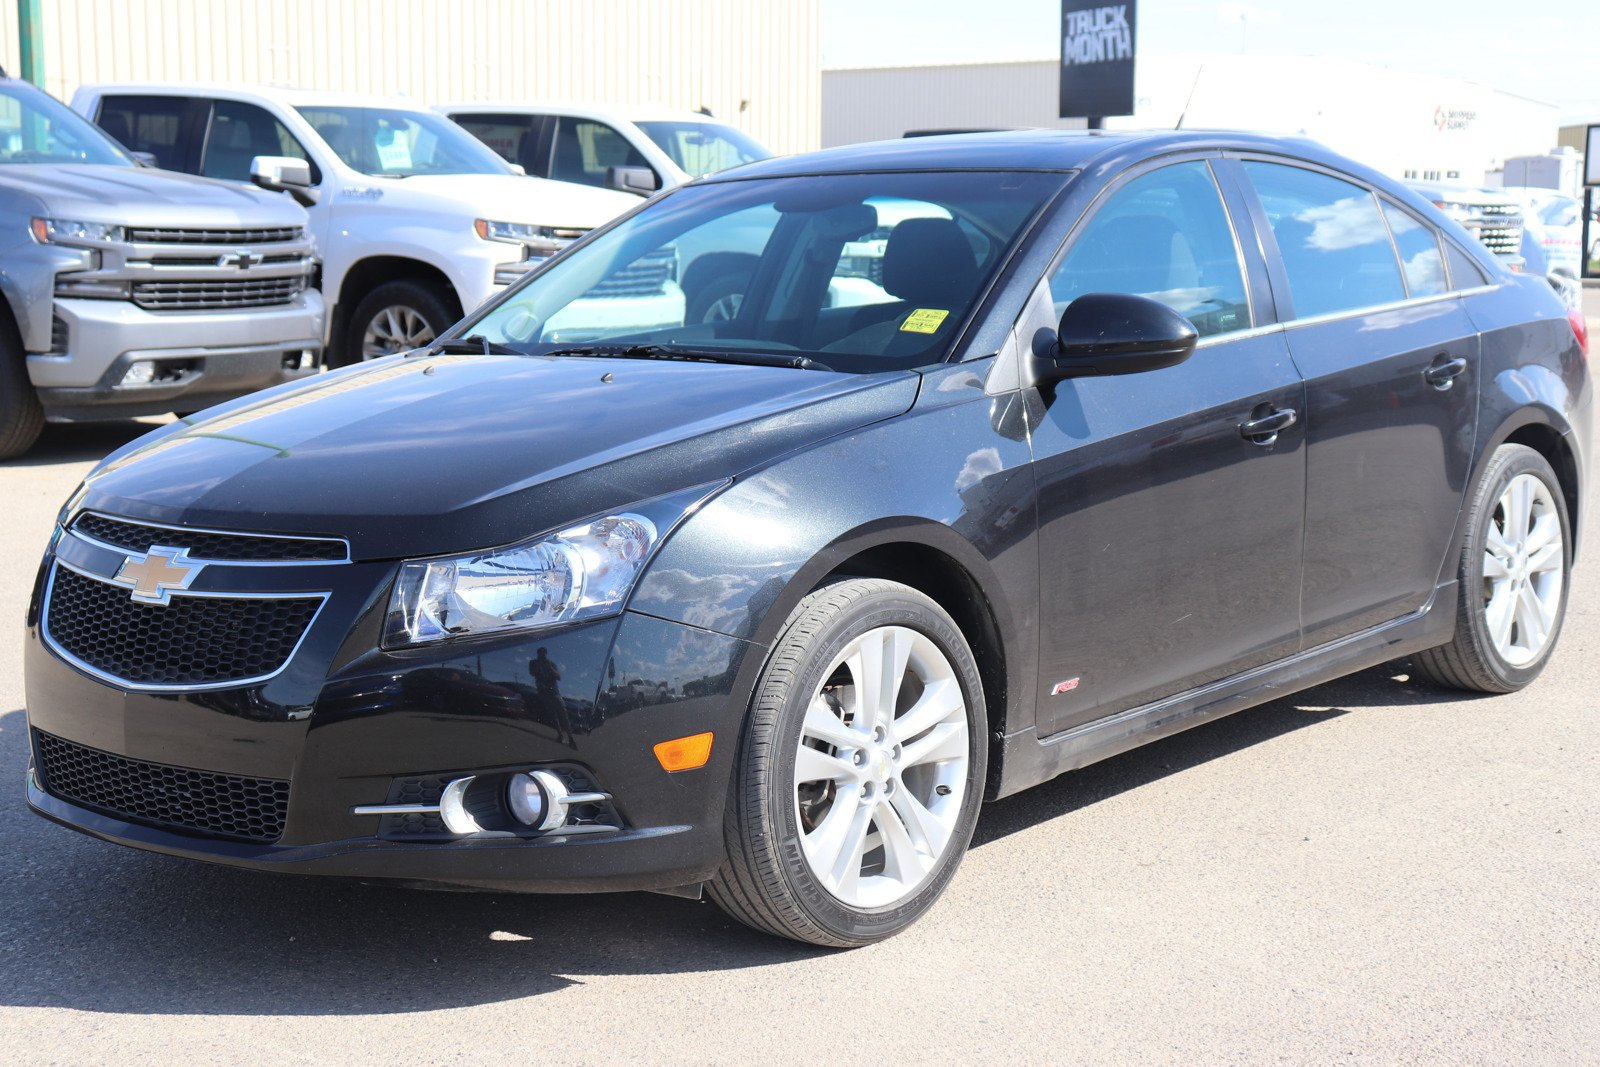 Certified Pre-Owned 2012 Chevrolet Cruze LT Turbo - RS Pkg, Sunroof, Remote Start, Power Seat